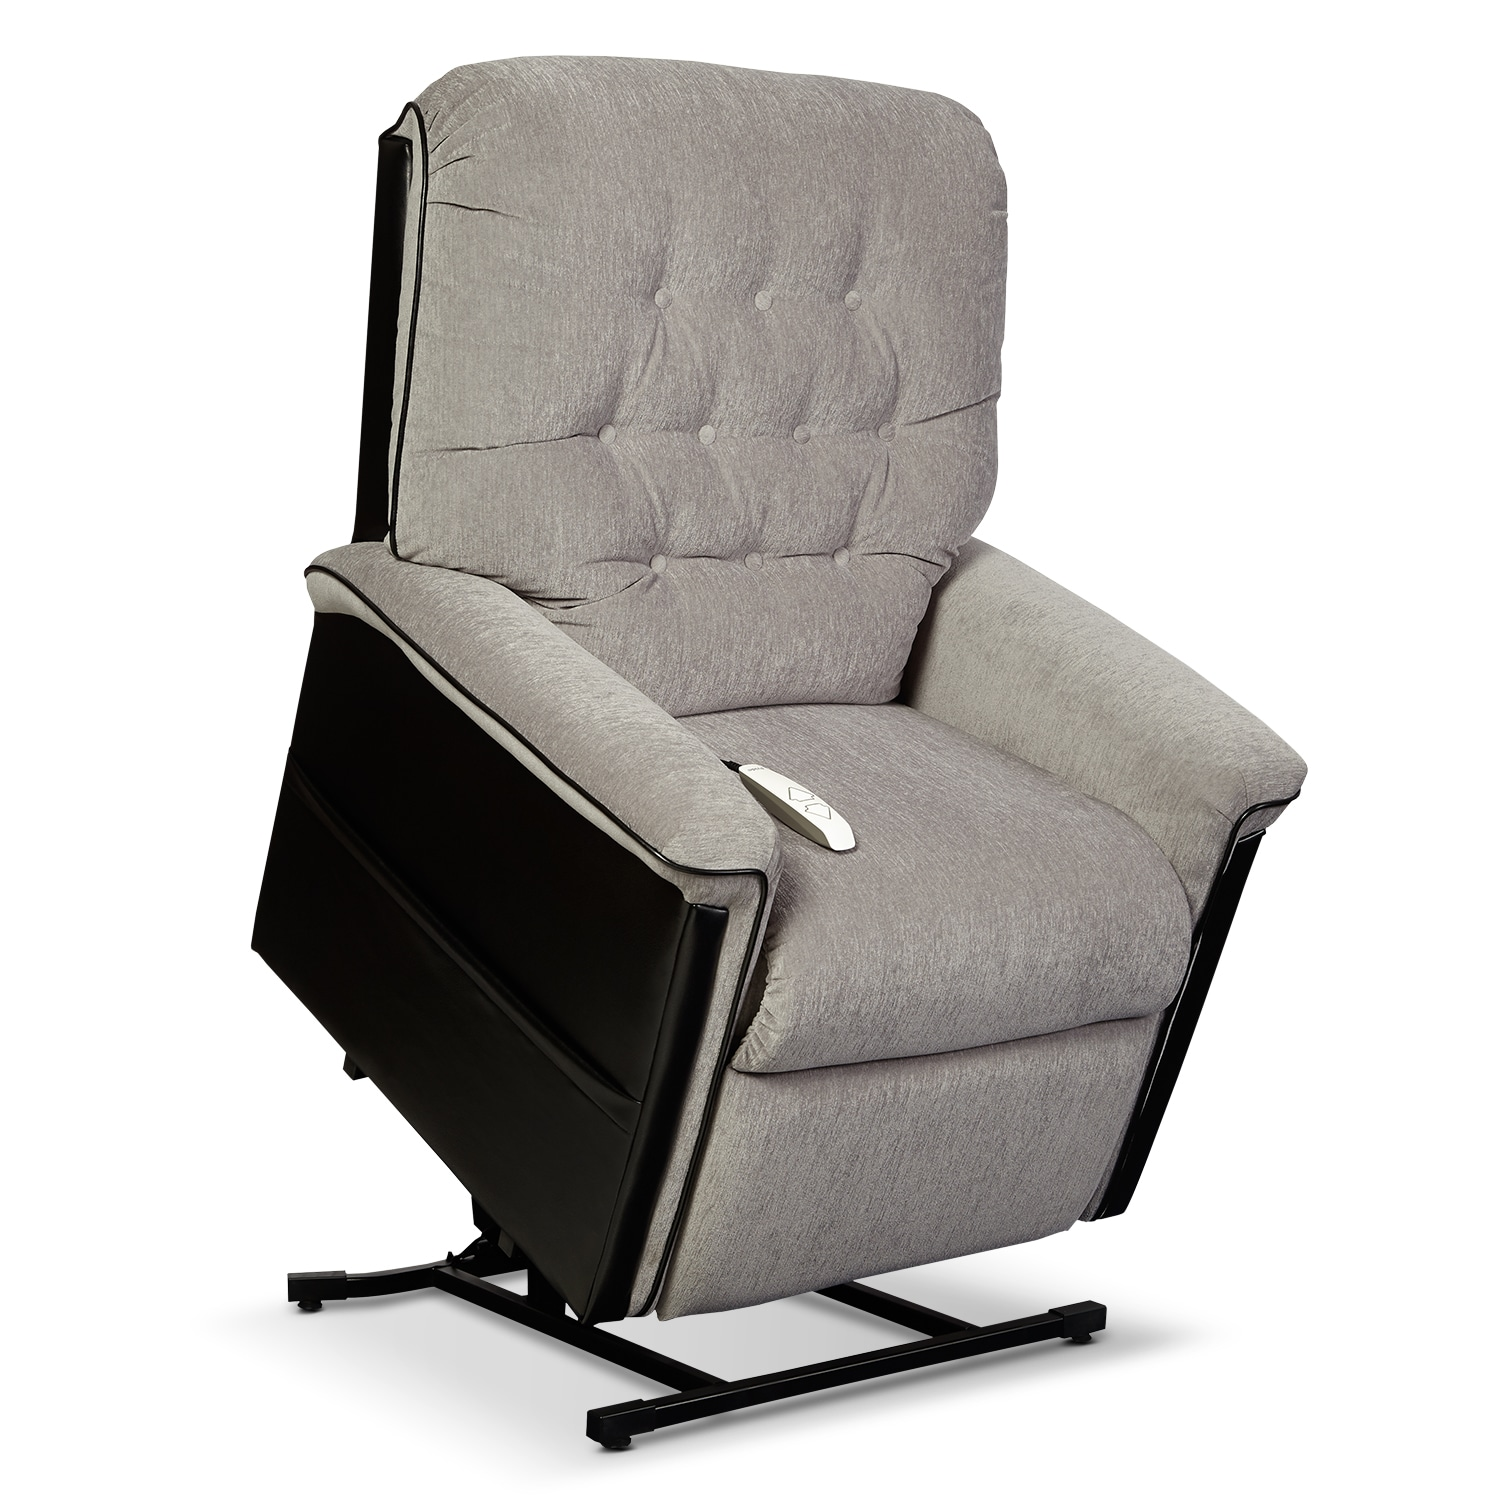 Living Room Furniture - Karmon Lift Chair - Black and Gray